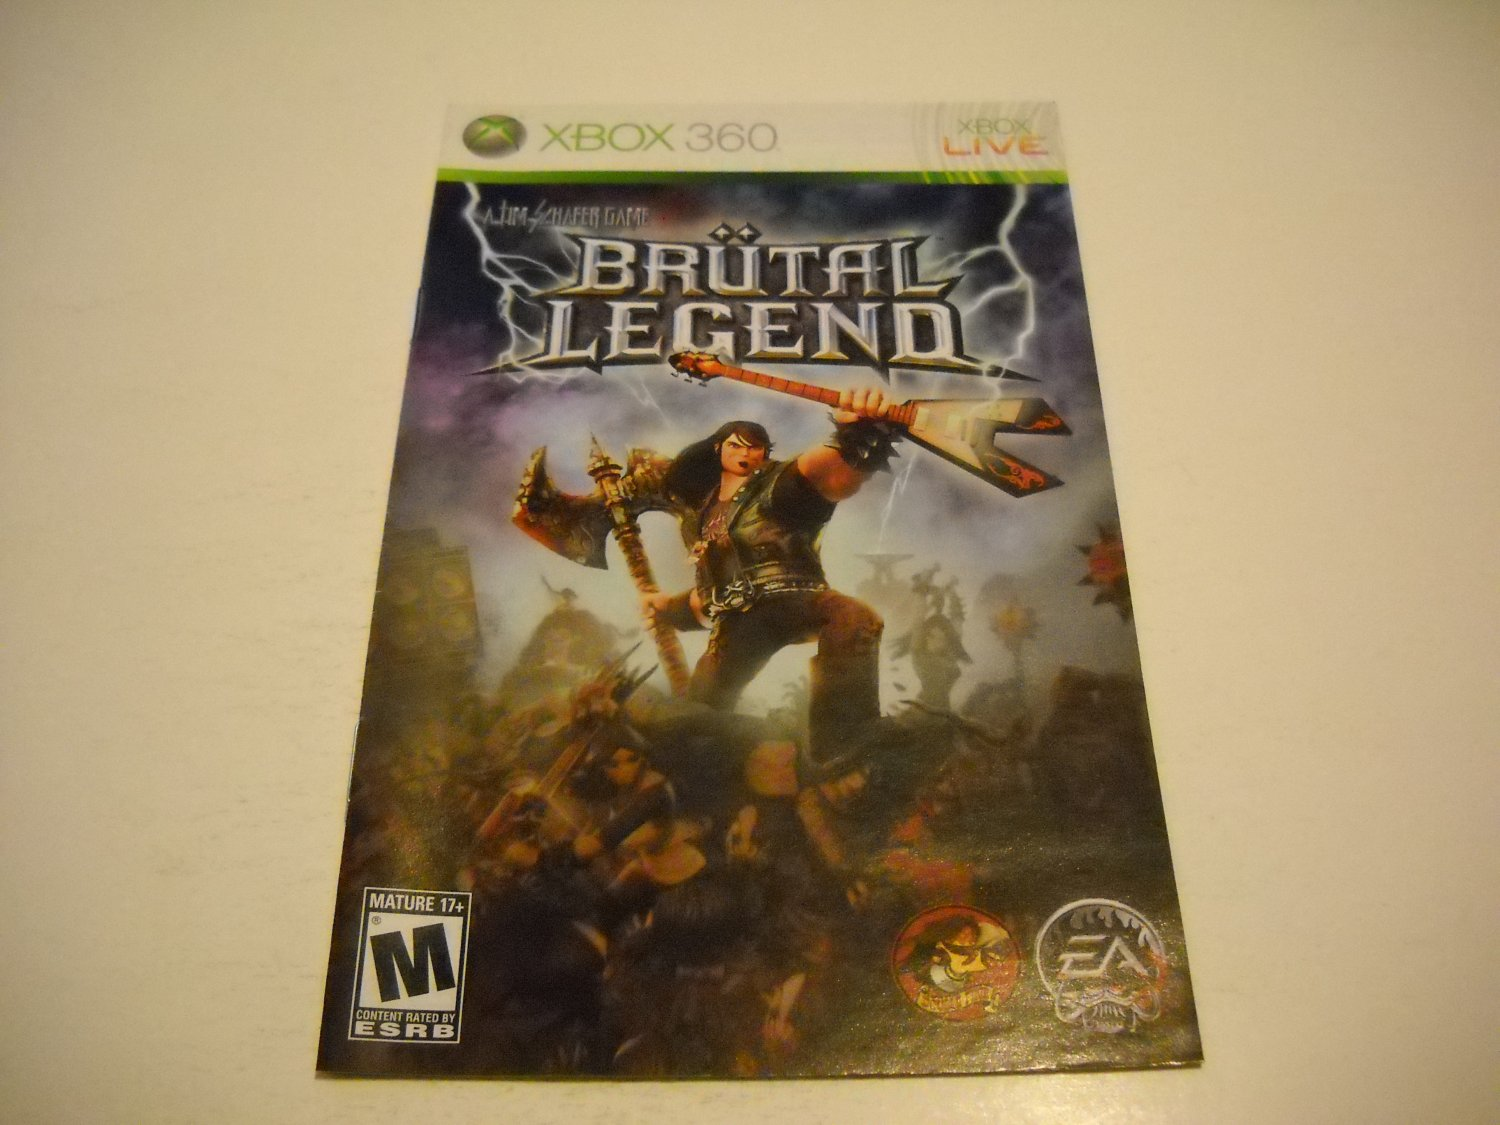 Manual ONLY ~  for Brutal Legend   - Xbox 360 Instruction Booklet